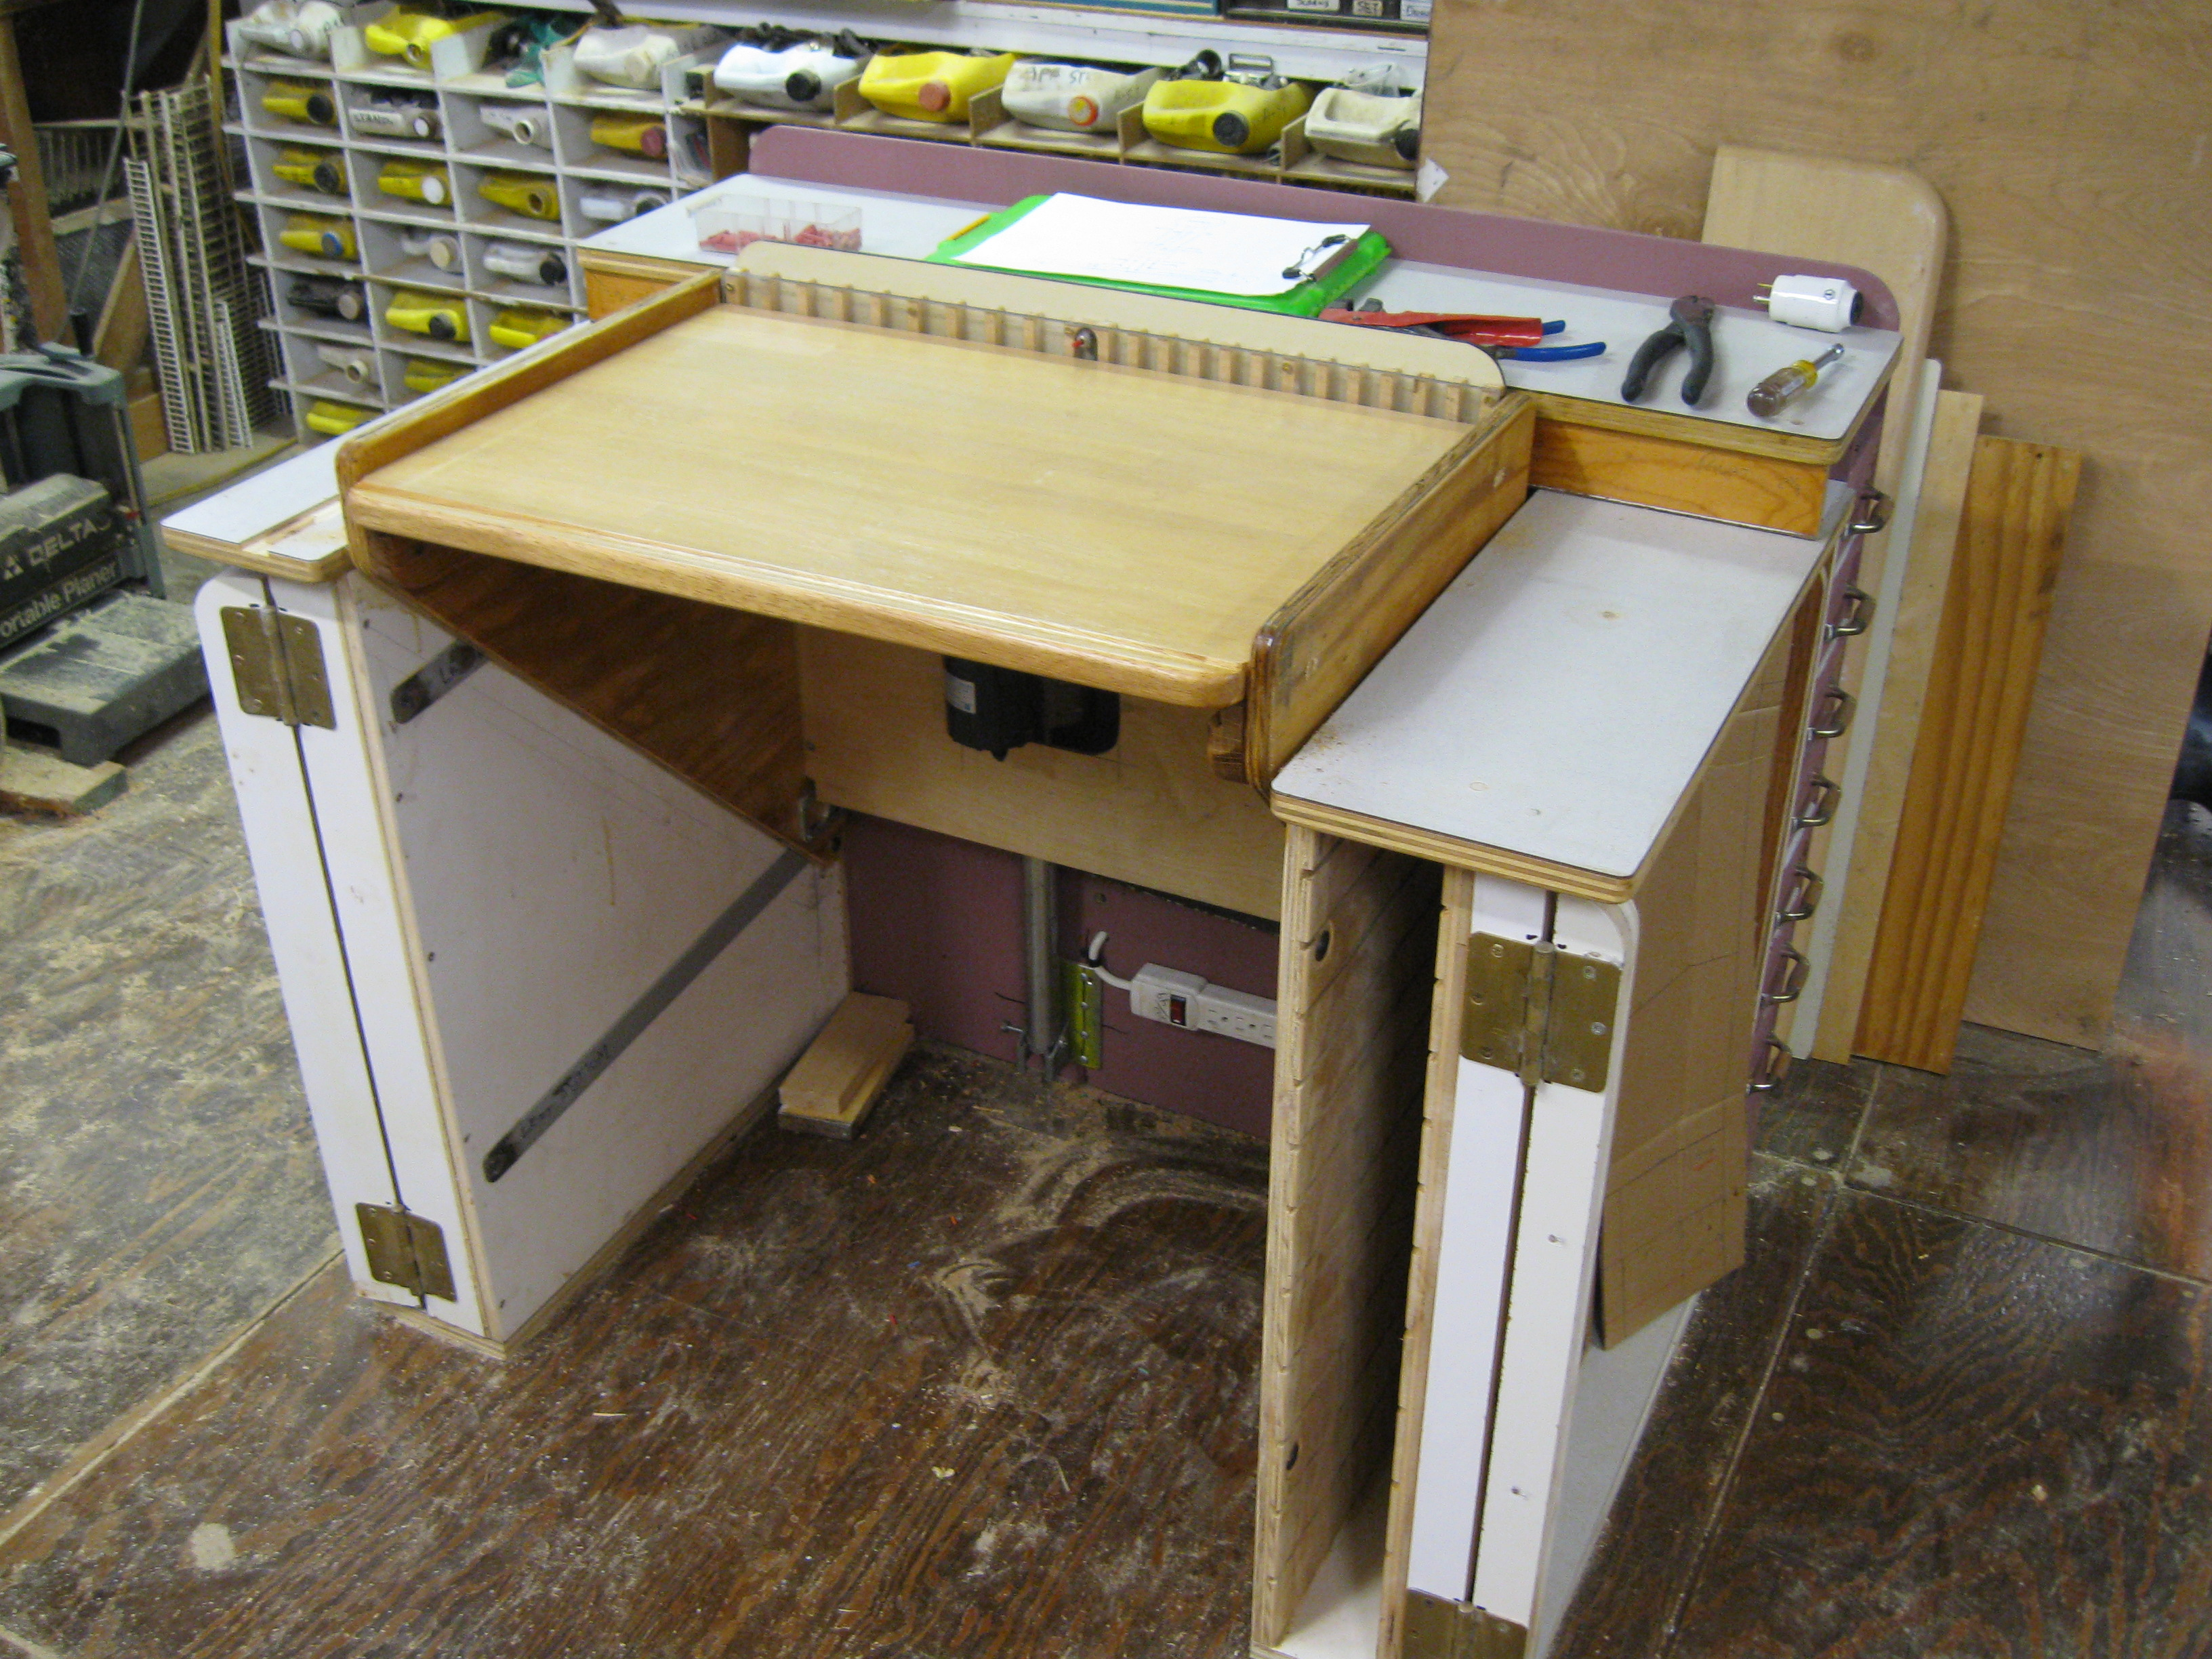 Picture of Adjustable Height Work Surface